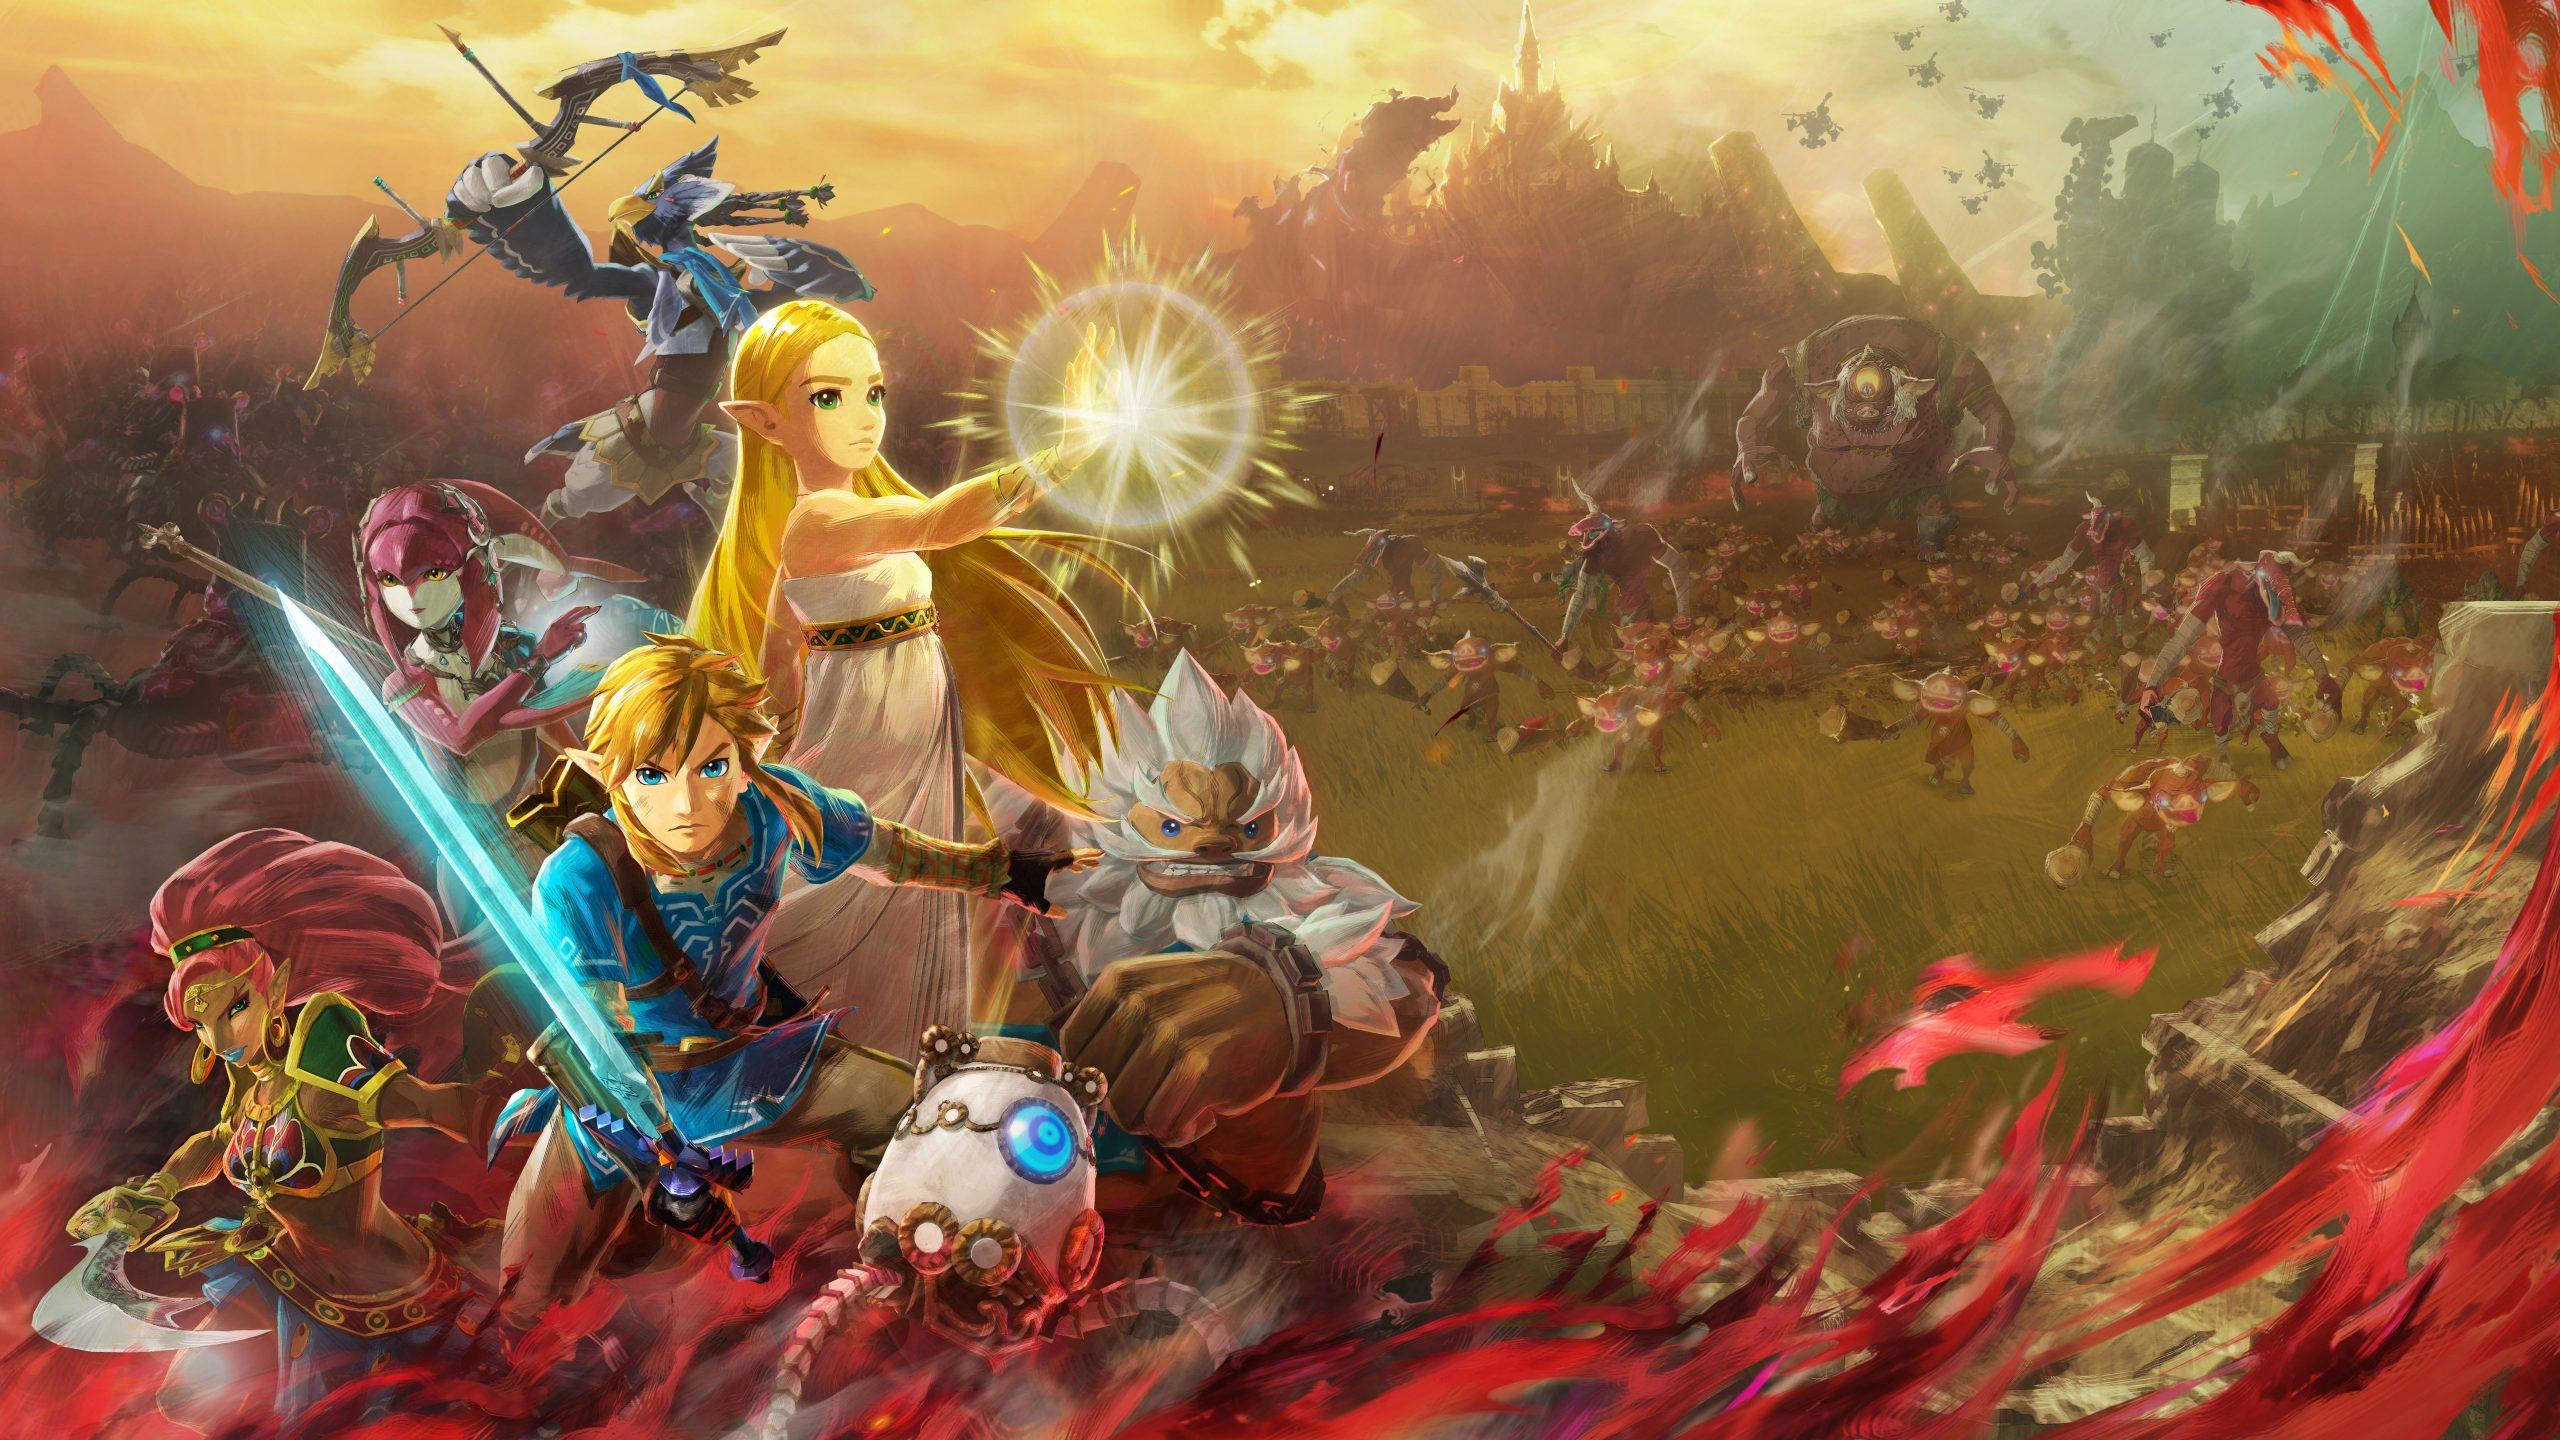 Hyrule Warriors: Age of Calamity Artwork